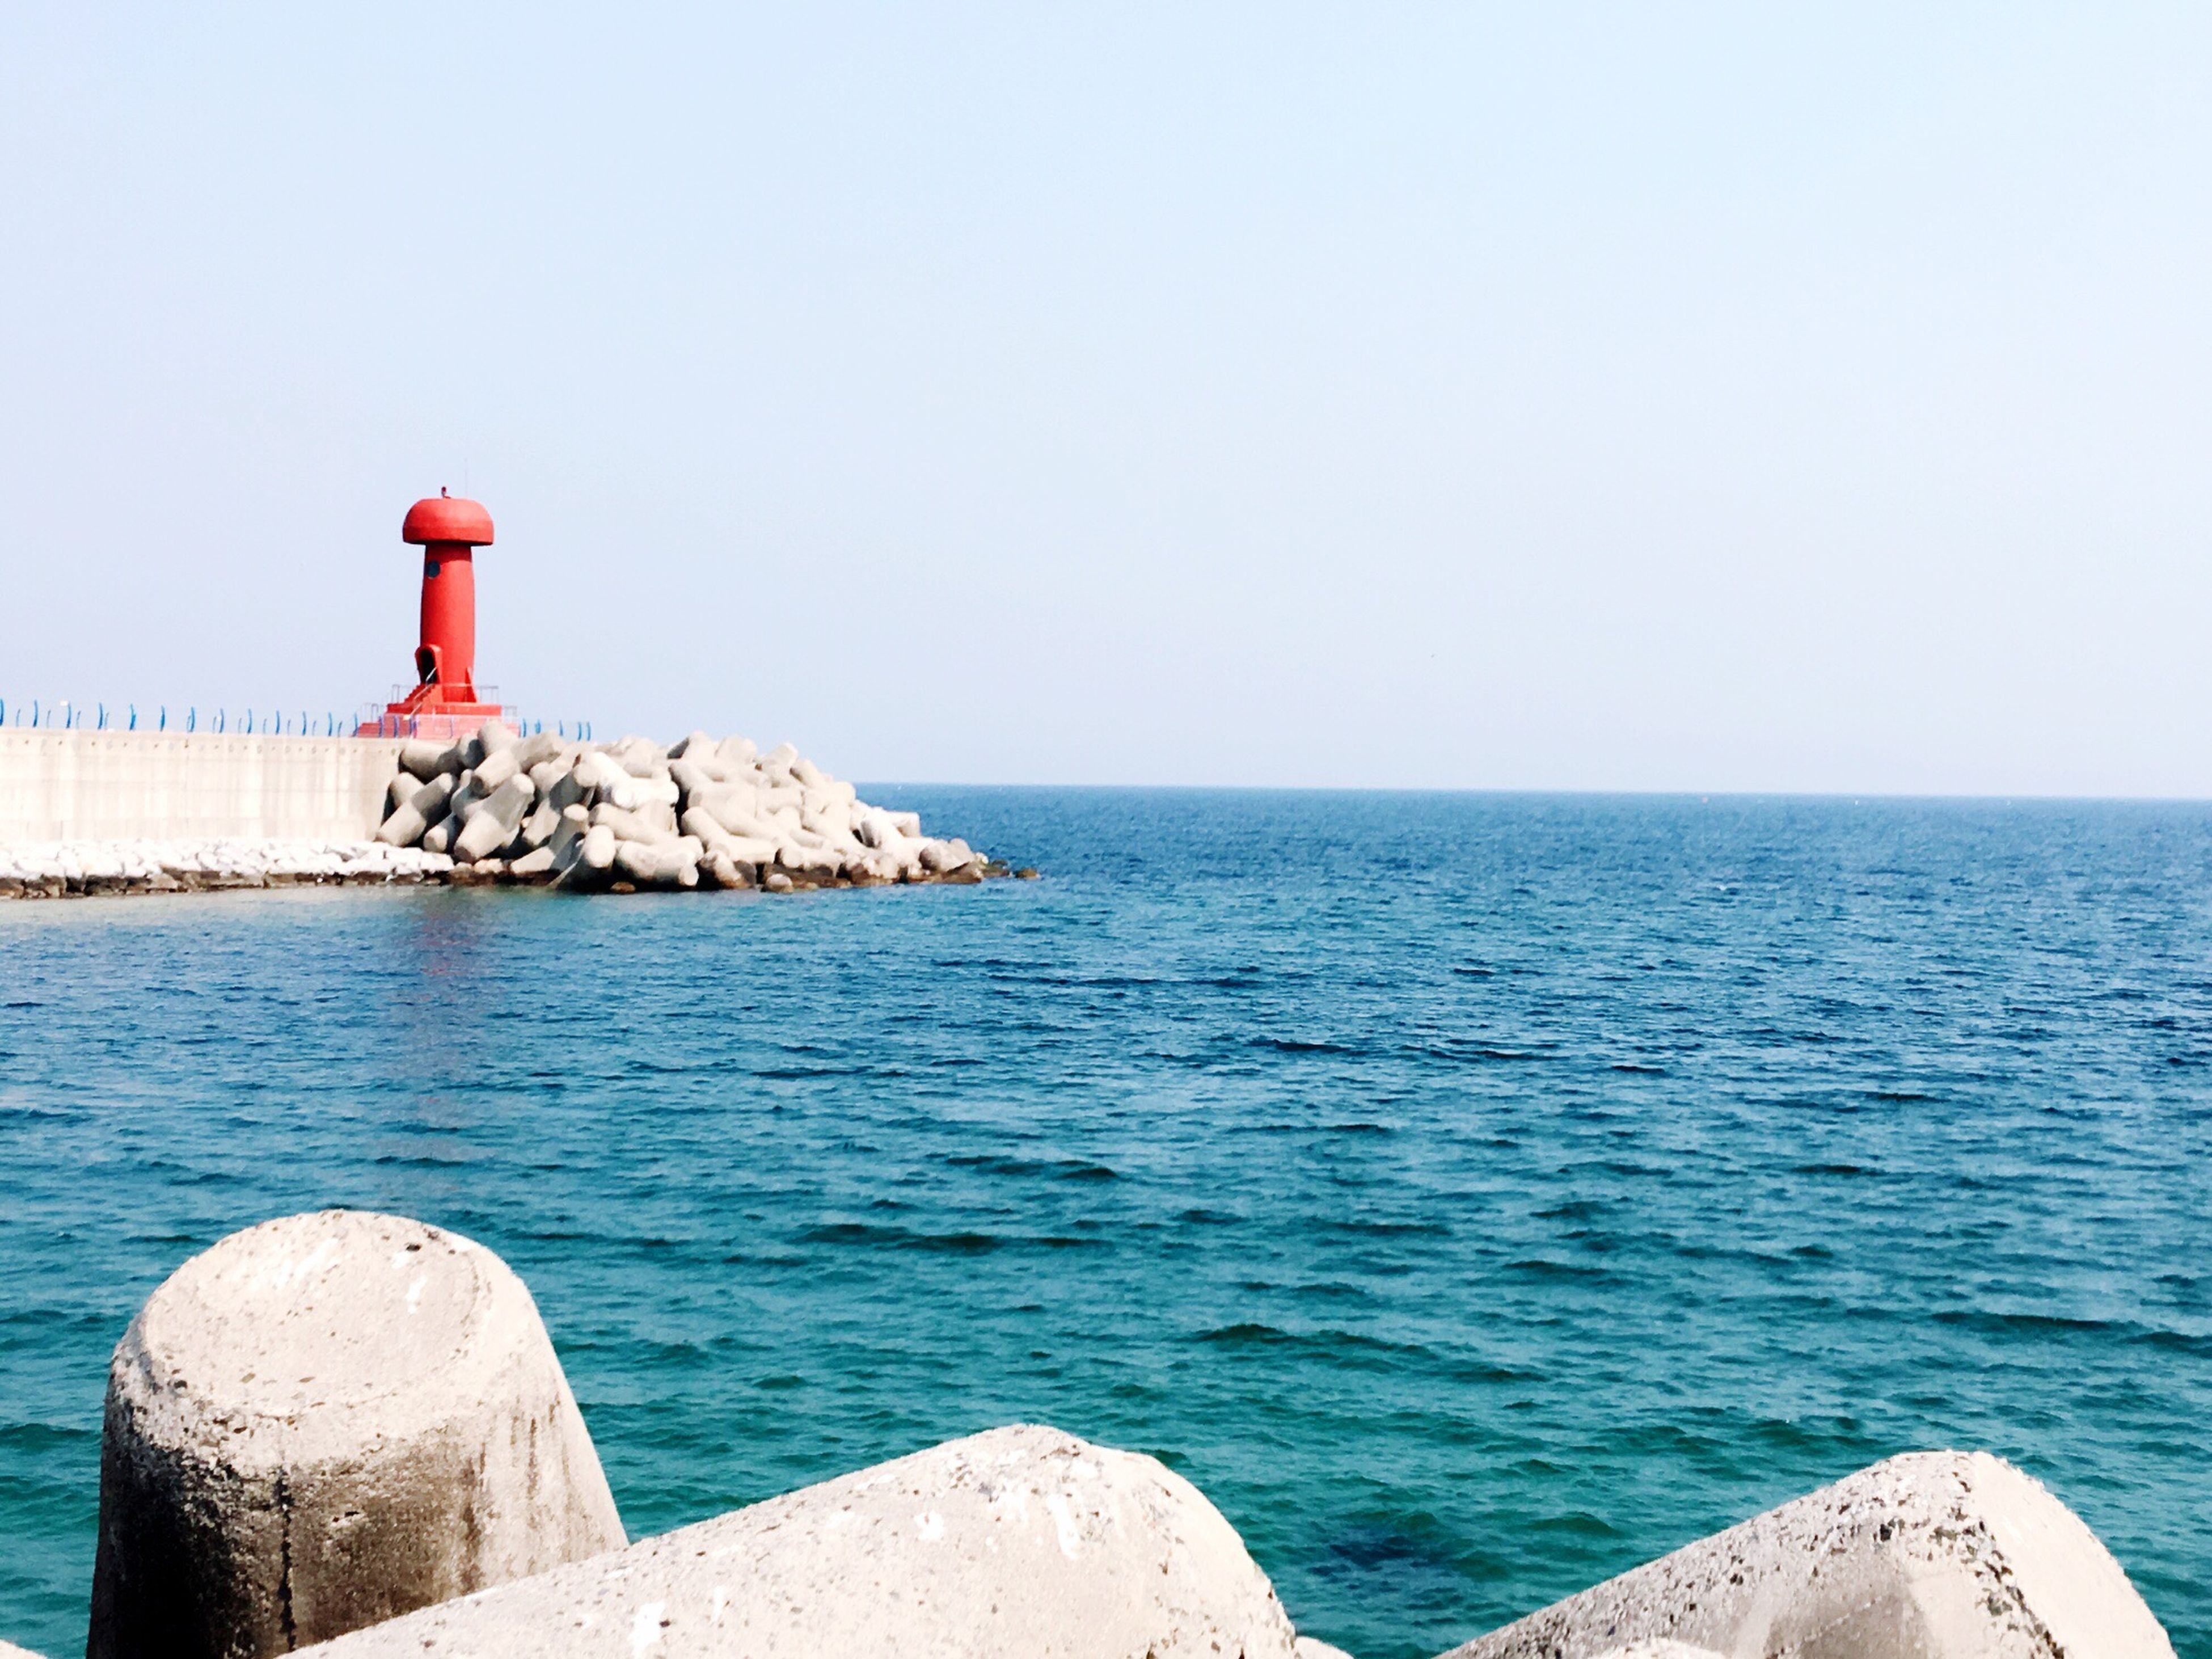 sea, lighthouse, water, horizon over water, guidance, clear sky, copy space, direction, protection, tranquil scene, built structure, scenics, architecture, safety, blue, rock - object, tranquility, beauty in nature, building exterior, nature